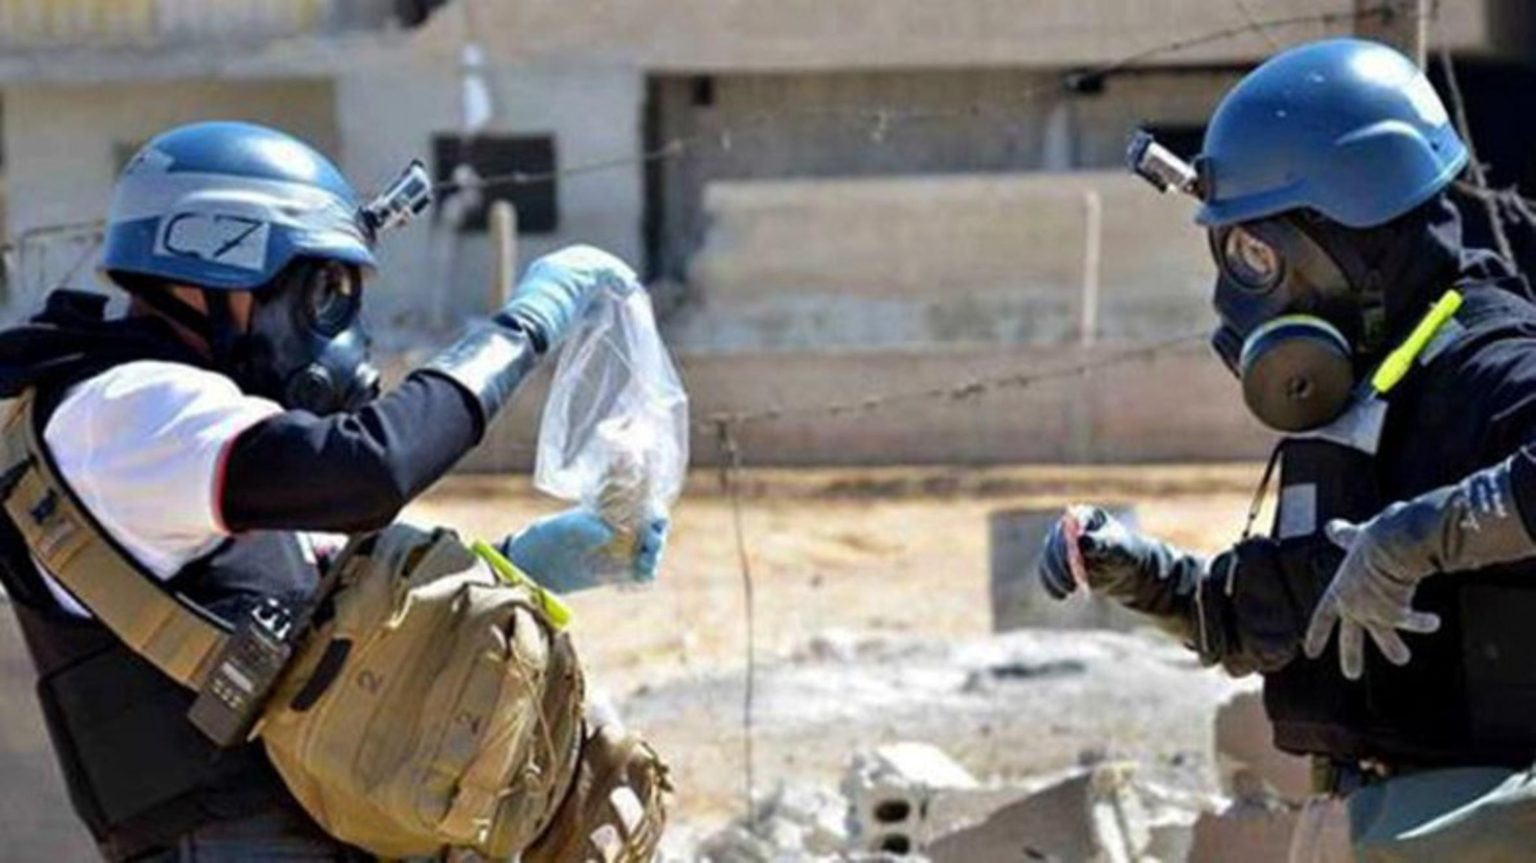 OPCW's members in Eastern Ghouta in 2013 (AFP)